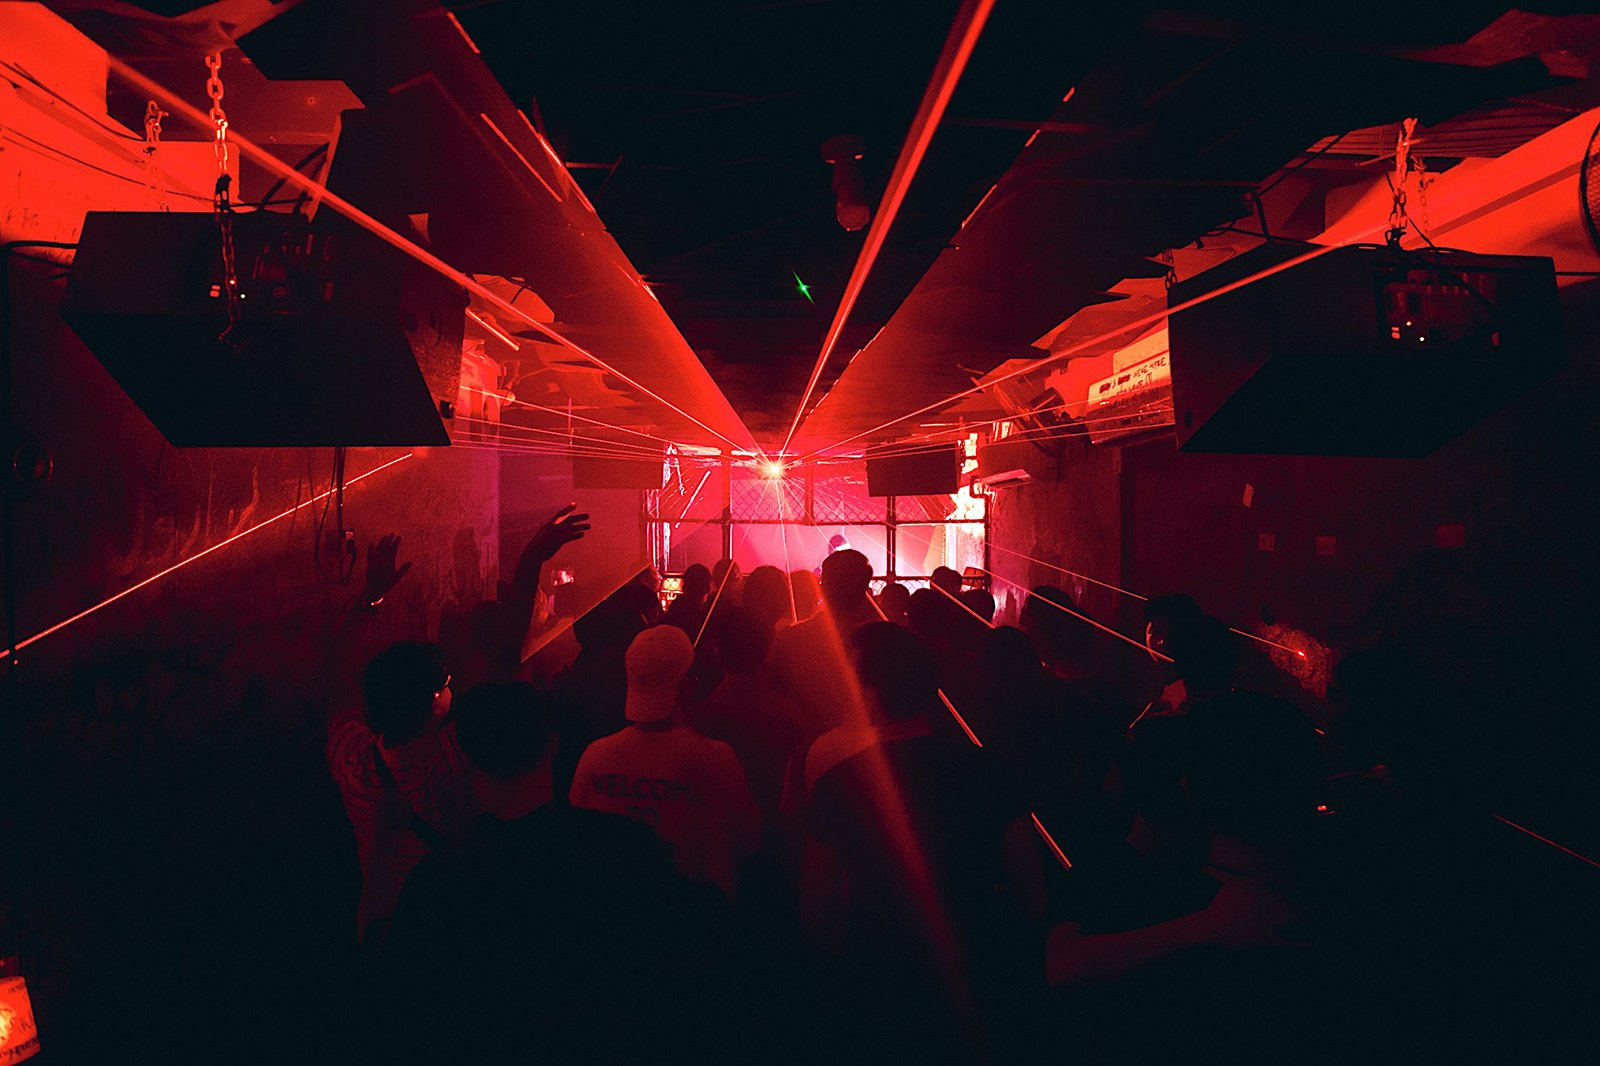 7 Best Singapore Clubs - All the best nightclubs and discos in Singapore